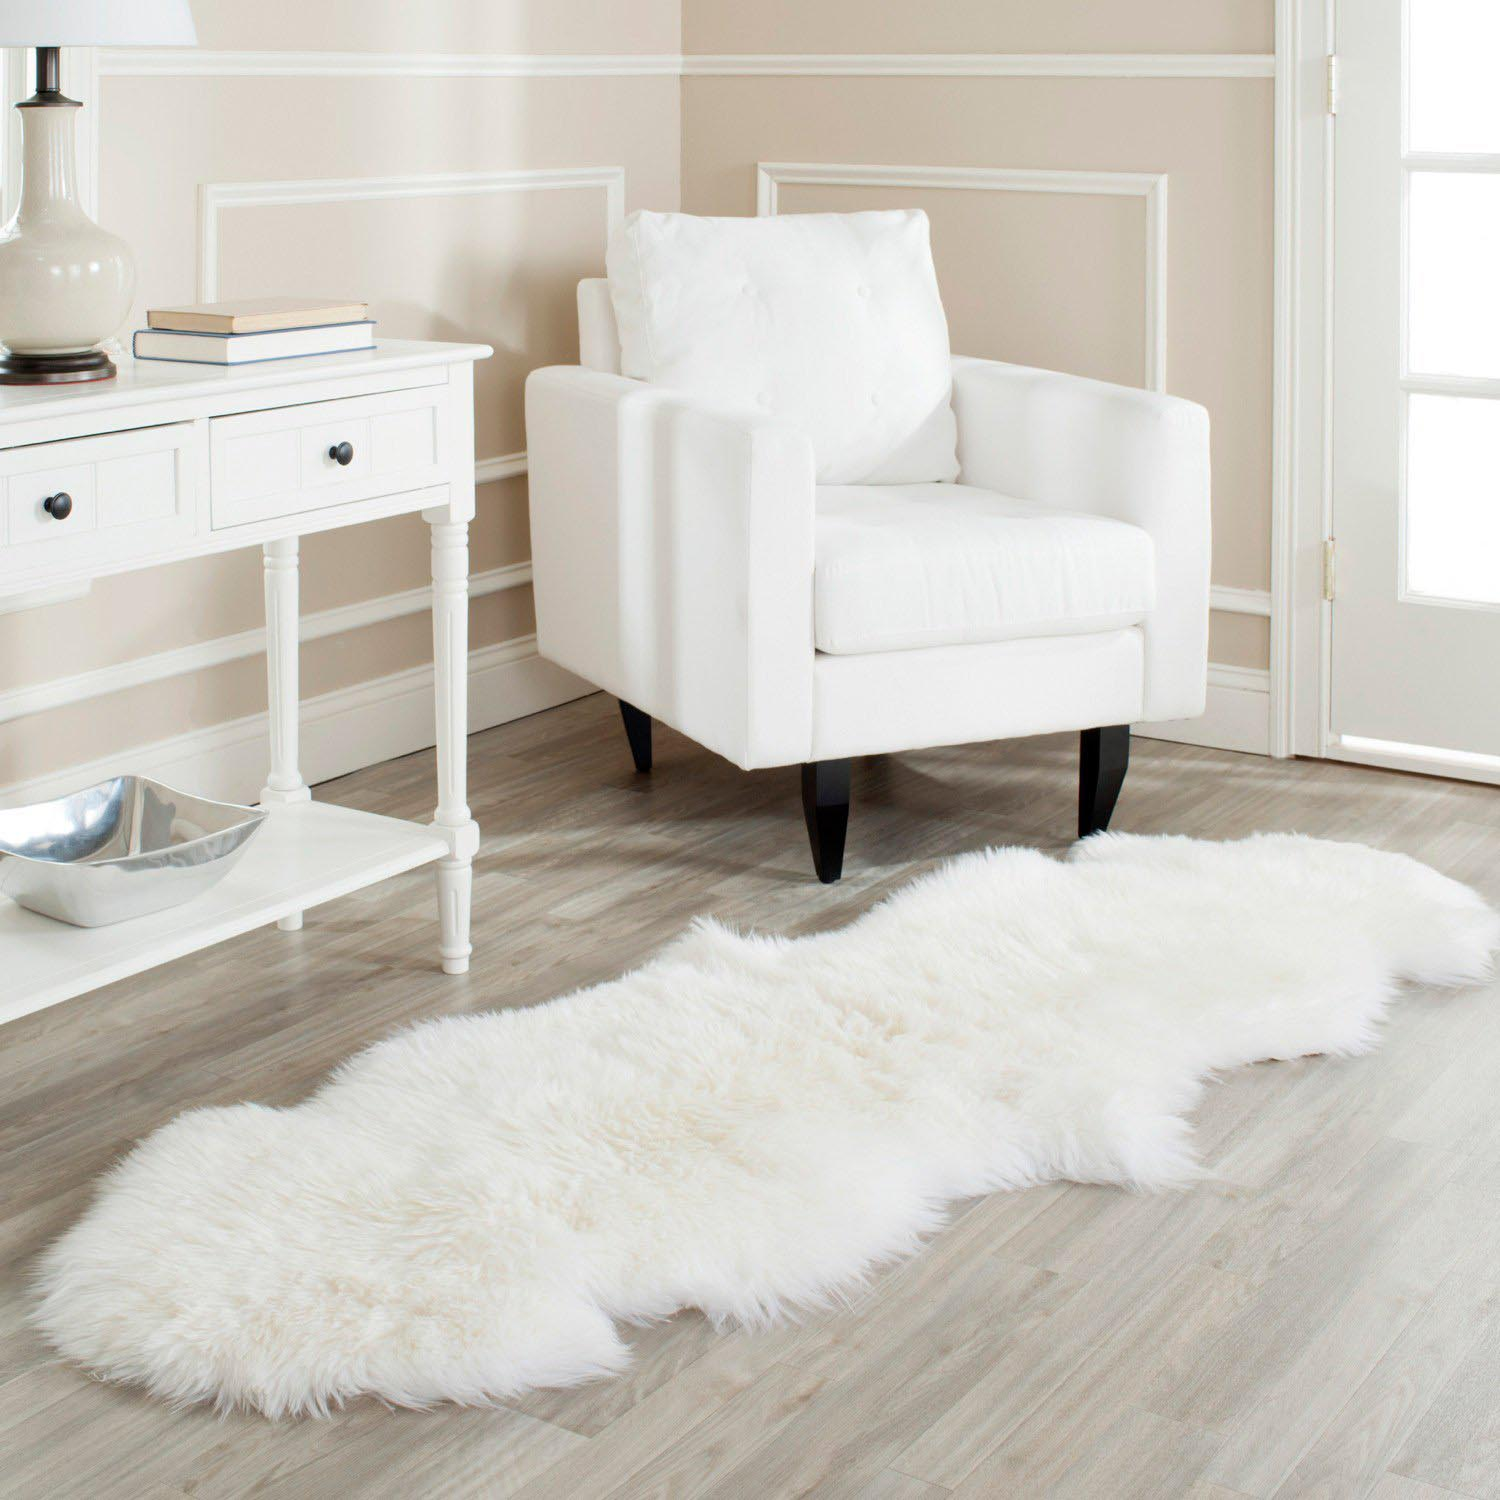 Creative white fur rug with Best wooden laminate flooring and sofa chairs for living room Ideas